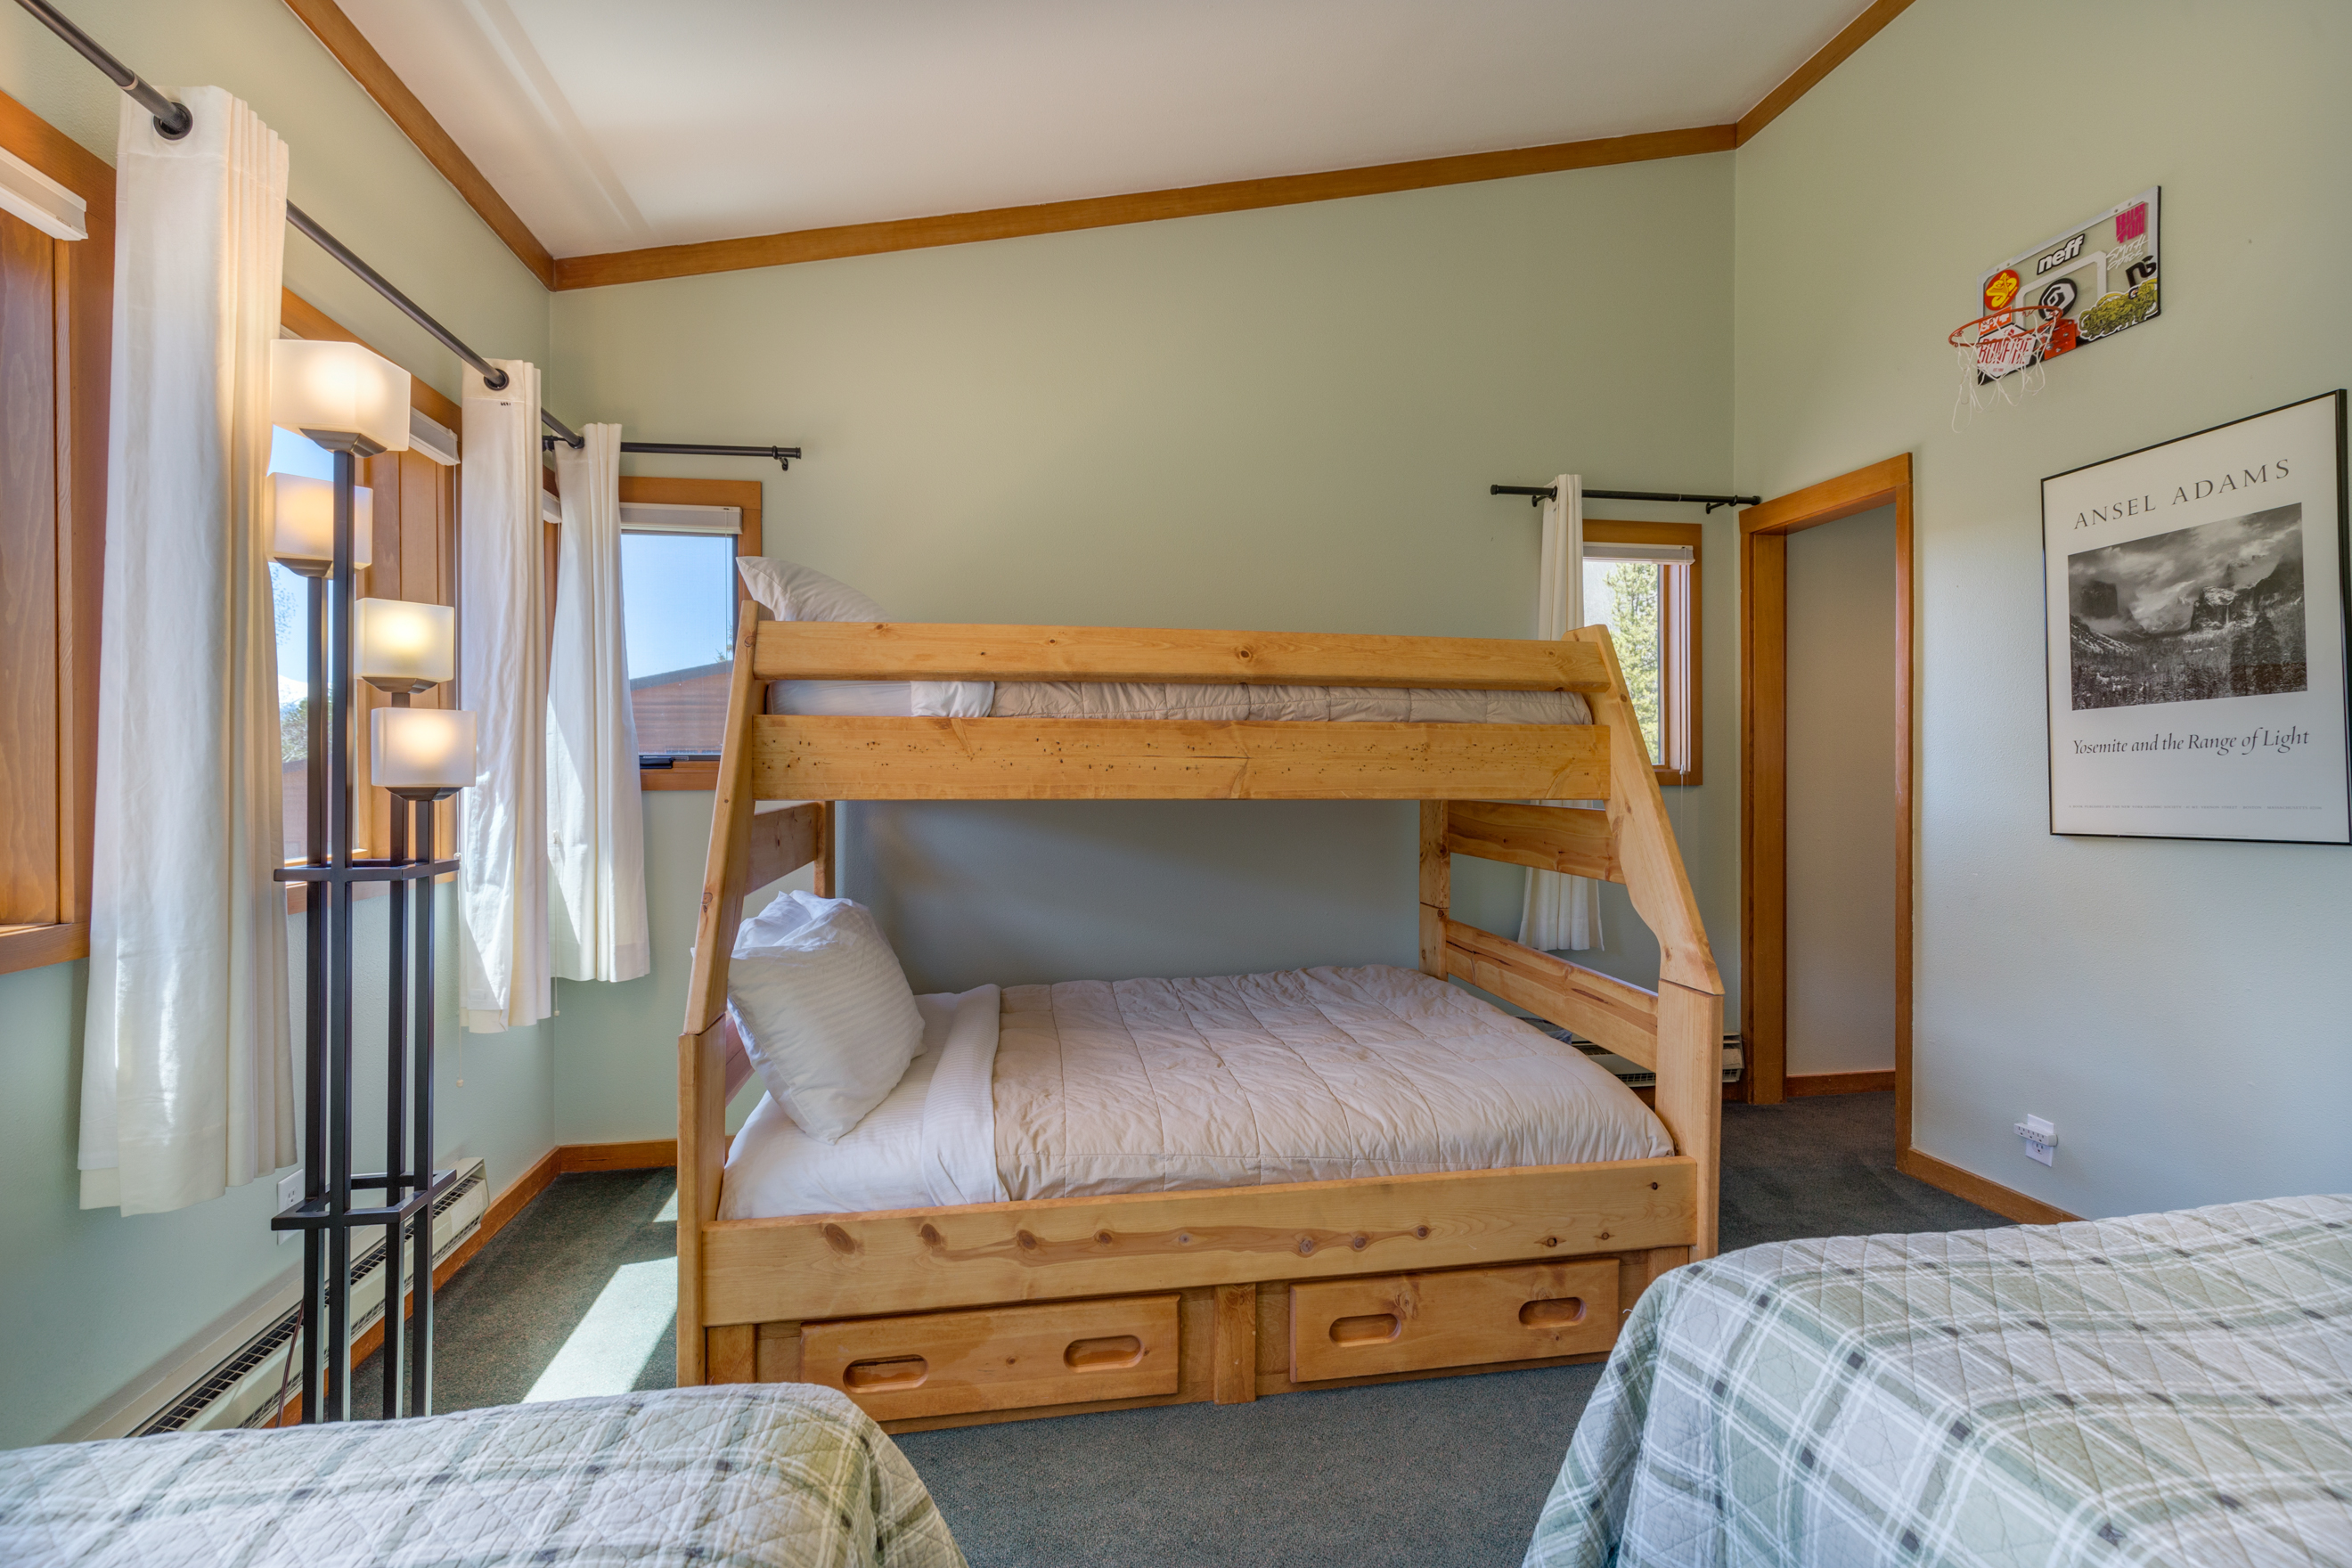 The second guest bedroom sleeps five with two twin beds and a twin-over-full bunk bed.